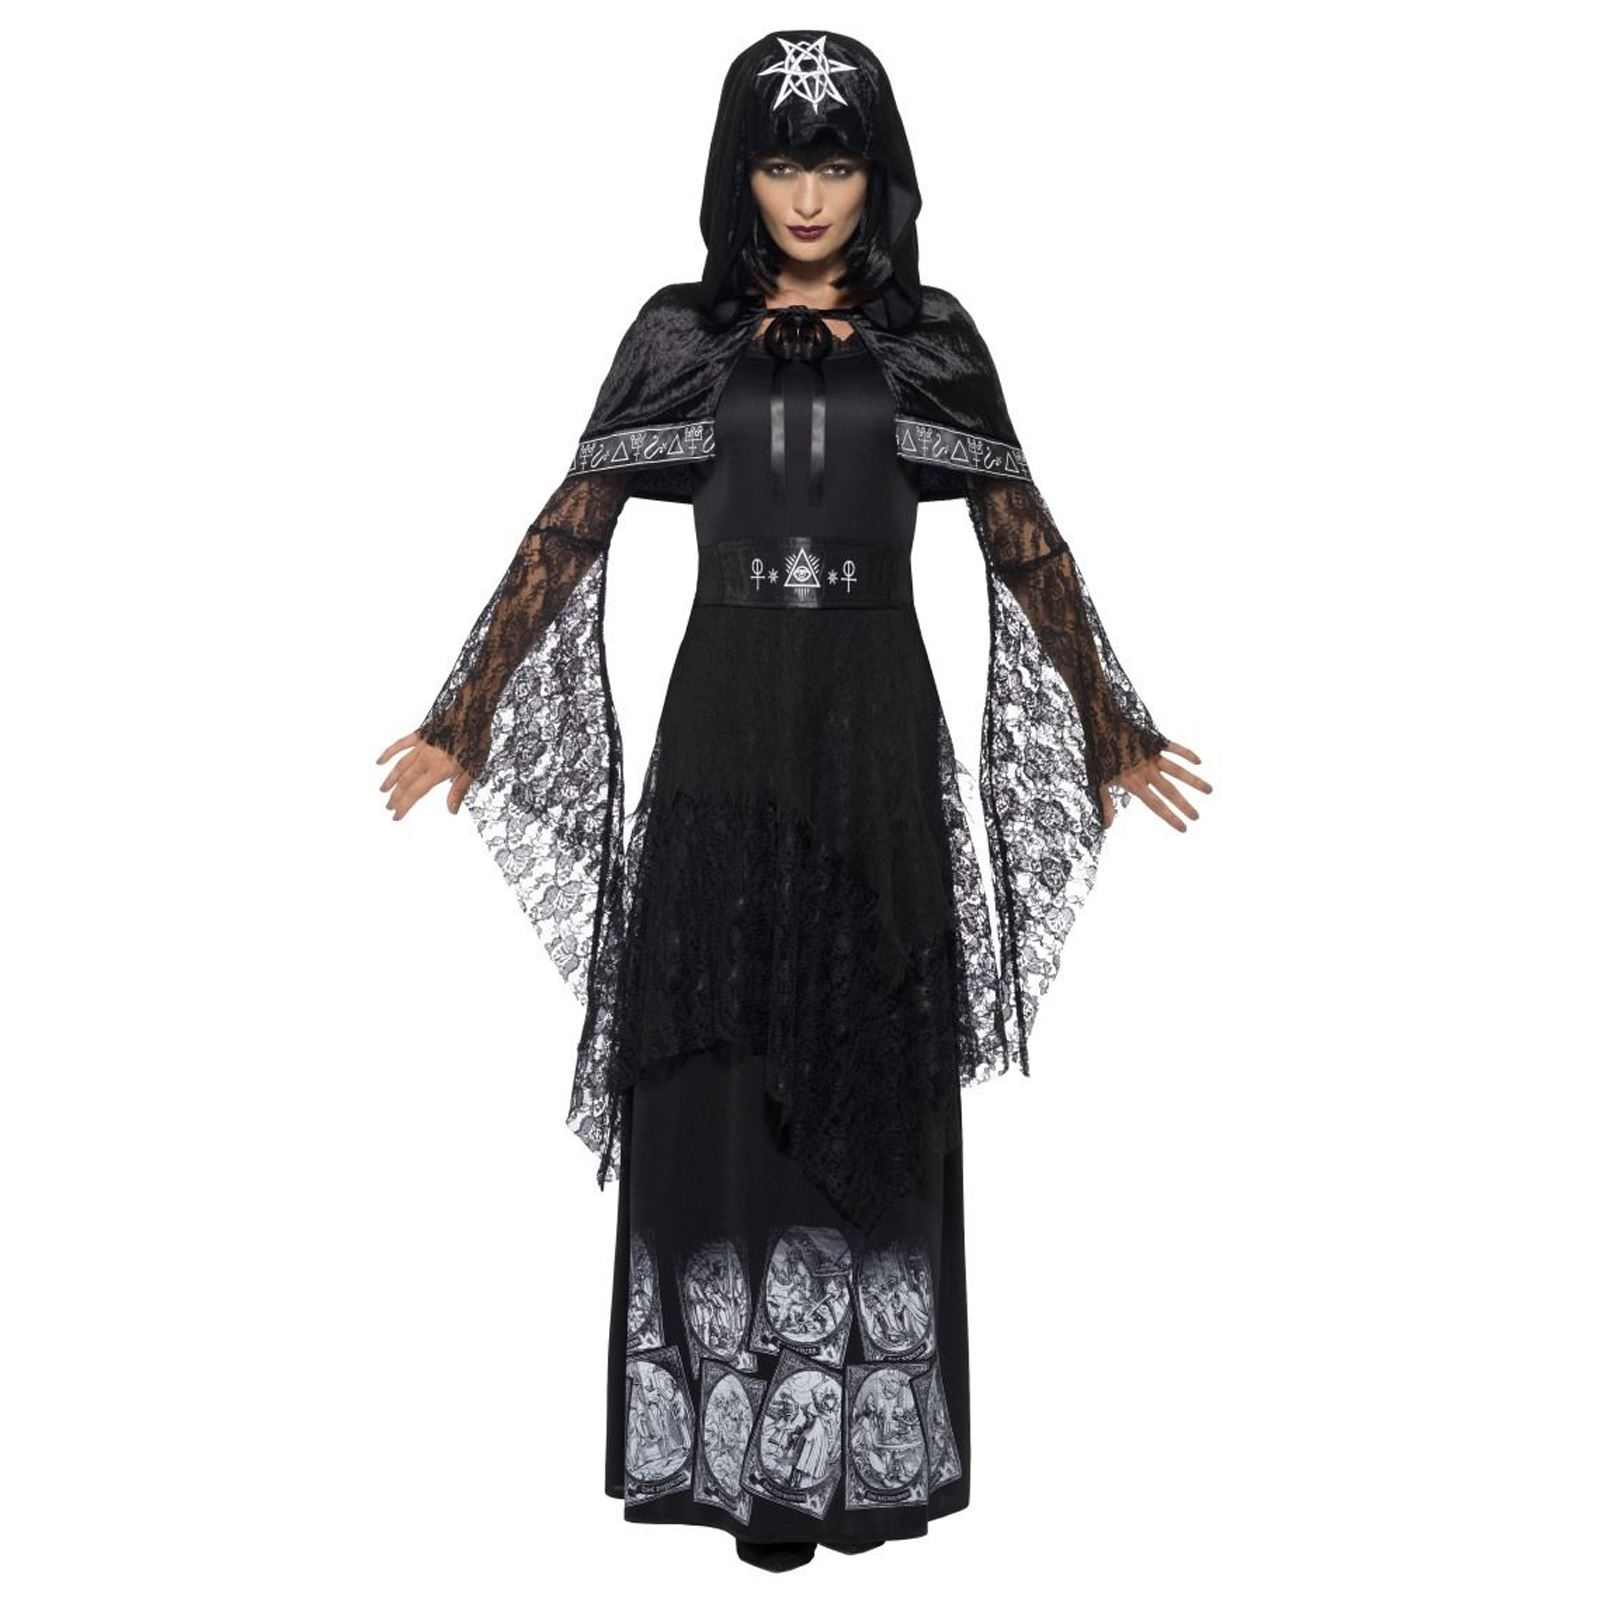 Halloween Costume 398.Details About Adult Ladies Black Magic Mistress Sexy Voodoo Hostess Duchess Halloween Costume